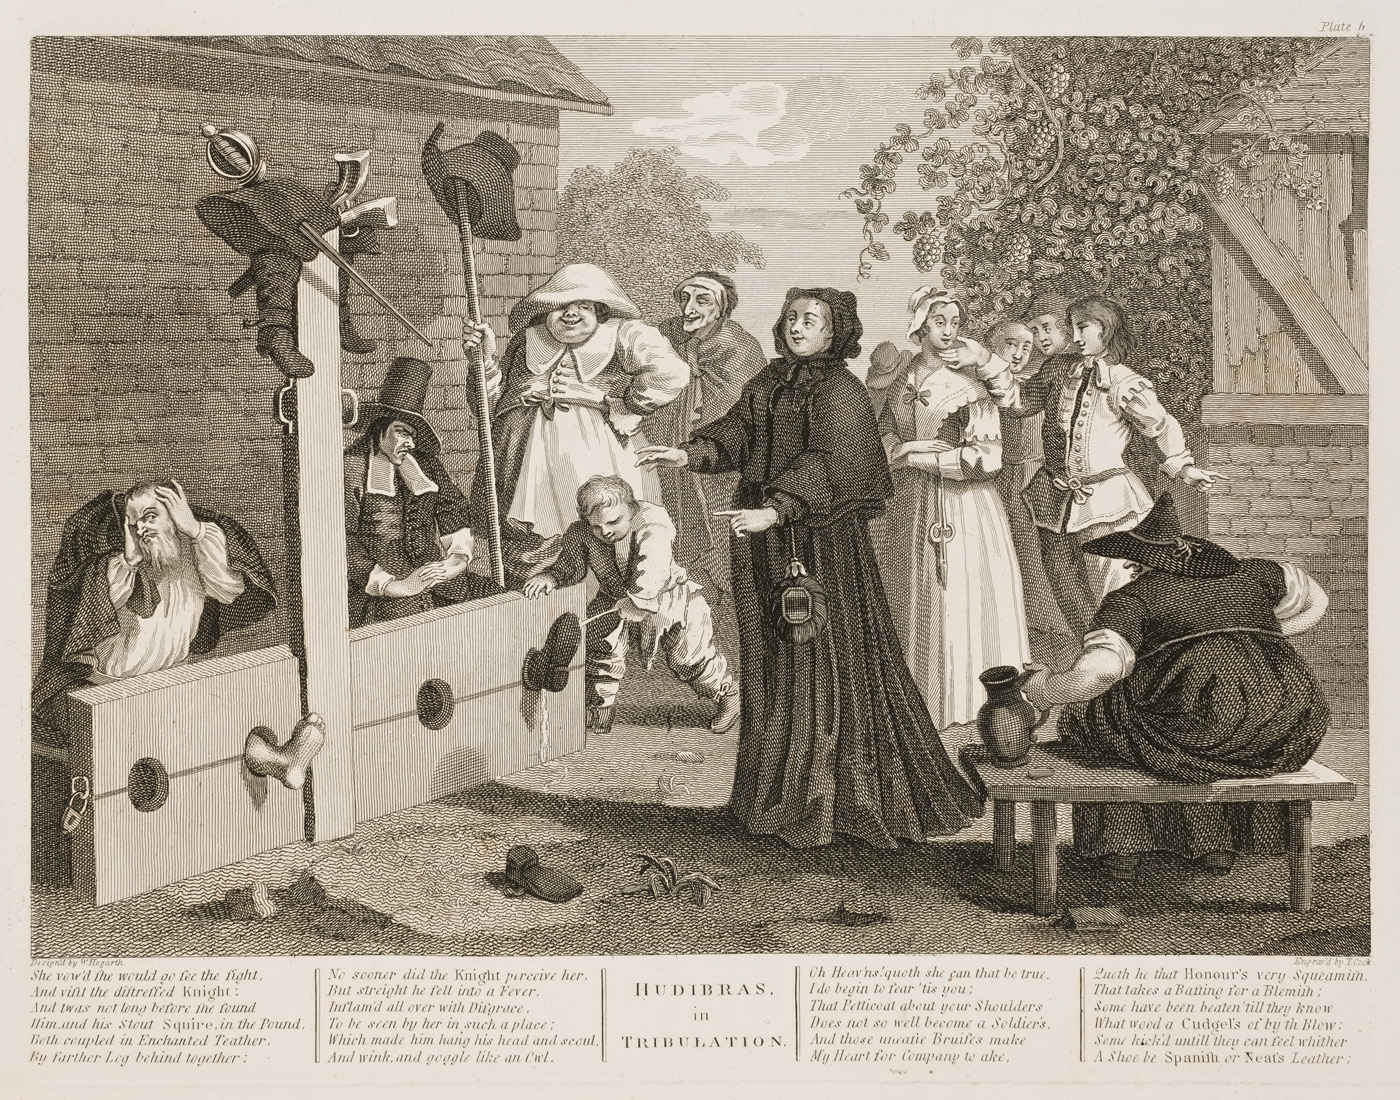 William Hogarth - Hudibras plate 6